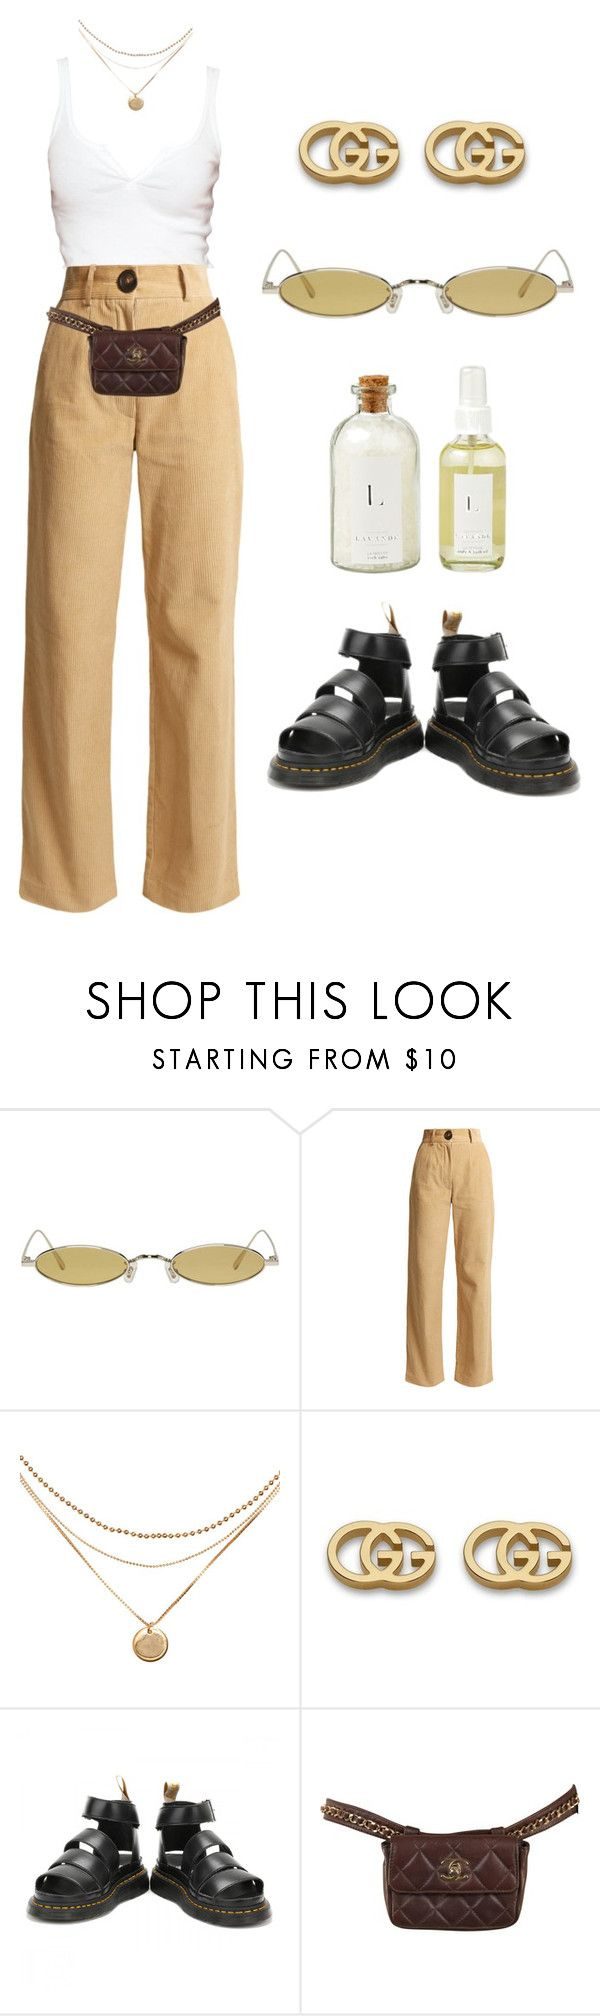 Untitled 352 by stoutjami on polyvore featuring gentle monster a w a k e gucci